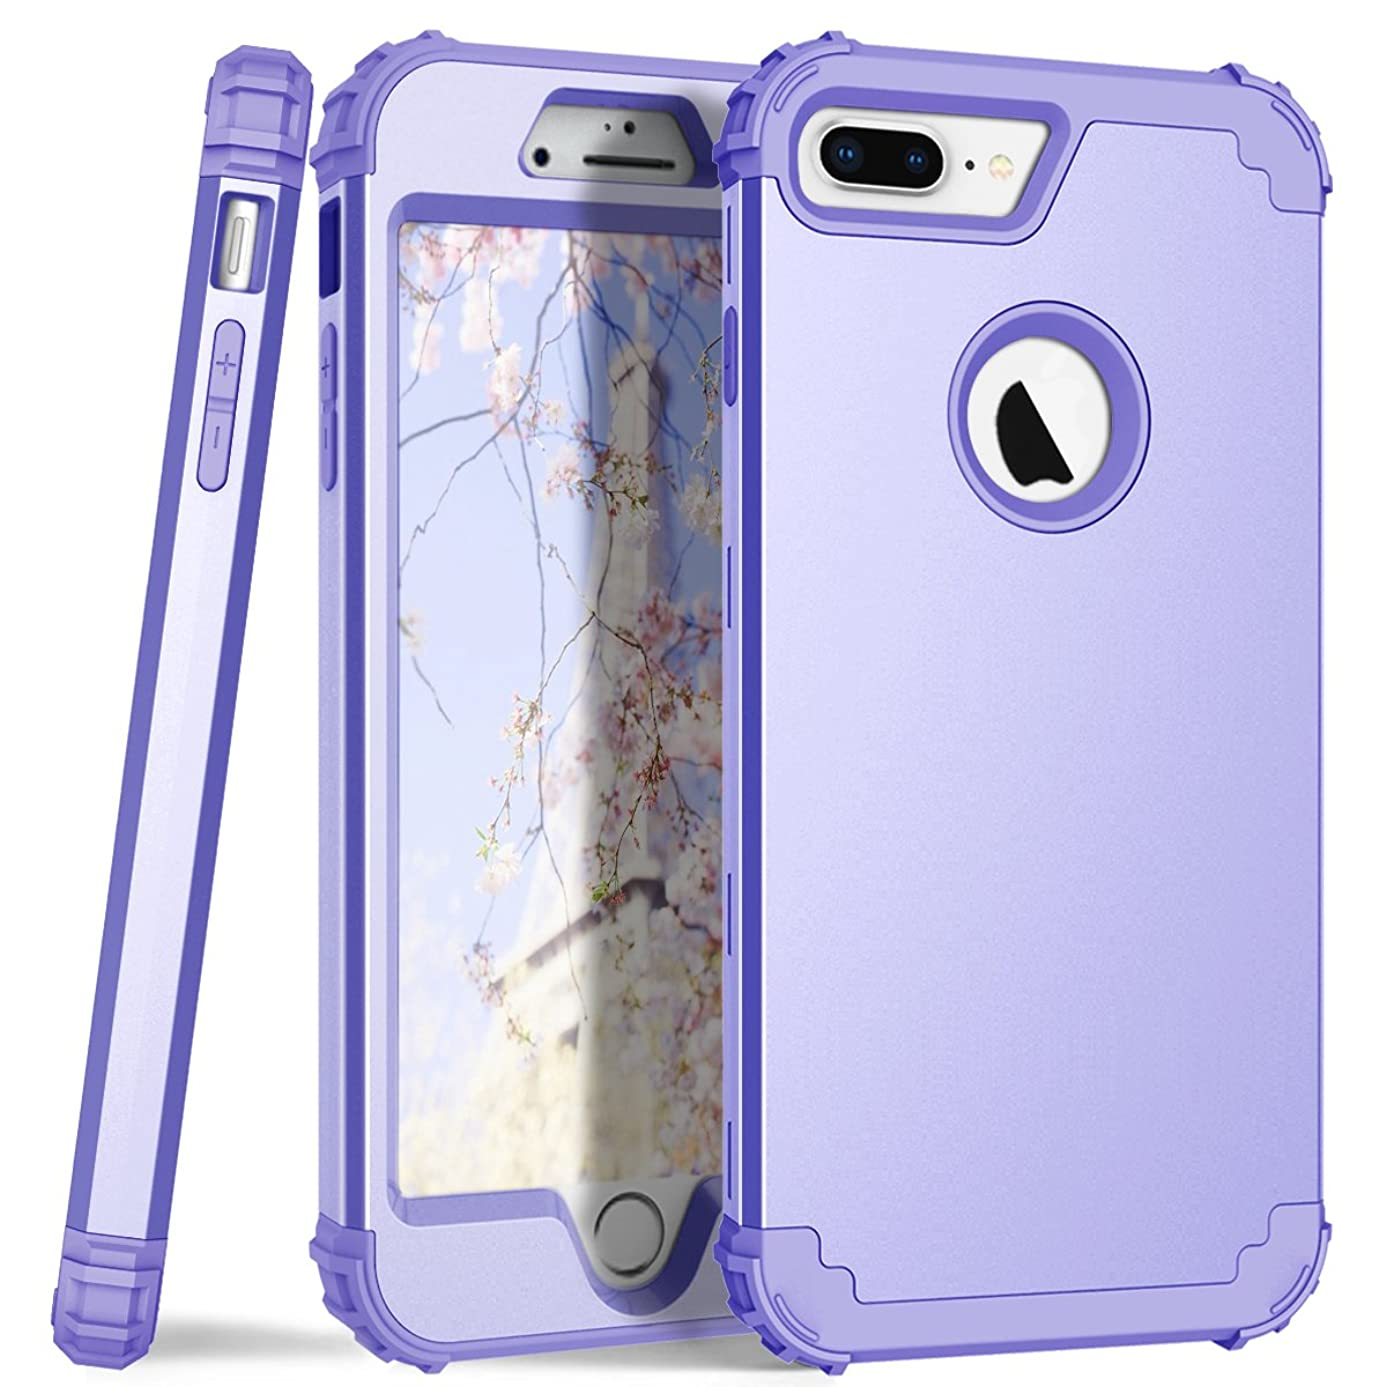 iPhone 8 Plus Case, Dooge 3in1 Hybrid Impact Heavy Duty Armor Defender Full-Body Shockproof Anti Slip Protective Cover with Silicone&Hard Solid PC Bumper for Apple iPhone 8 Plus Lavender